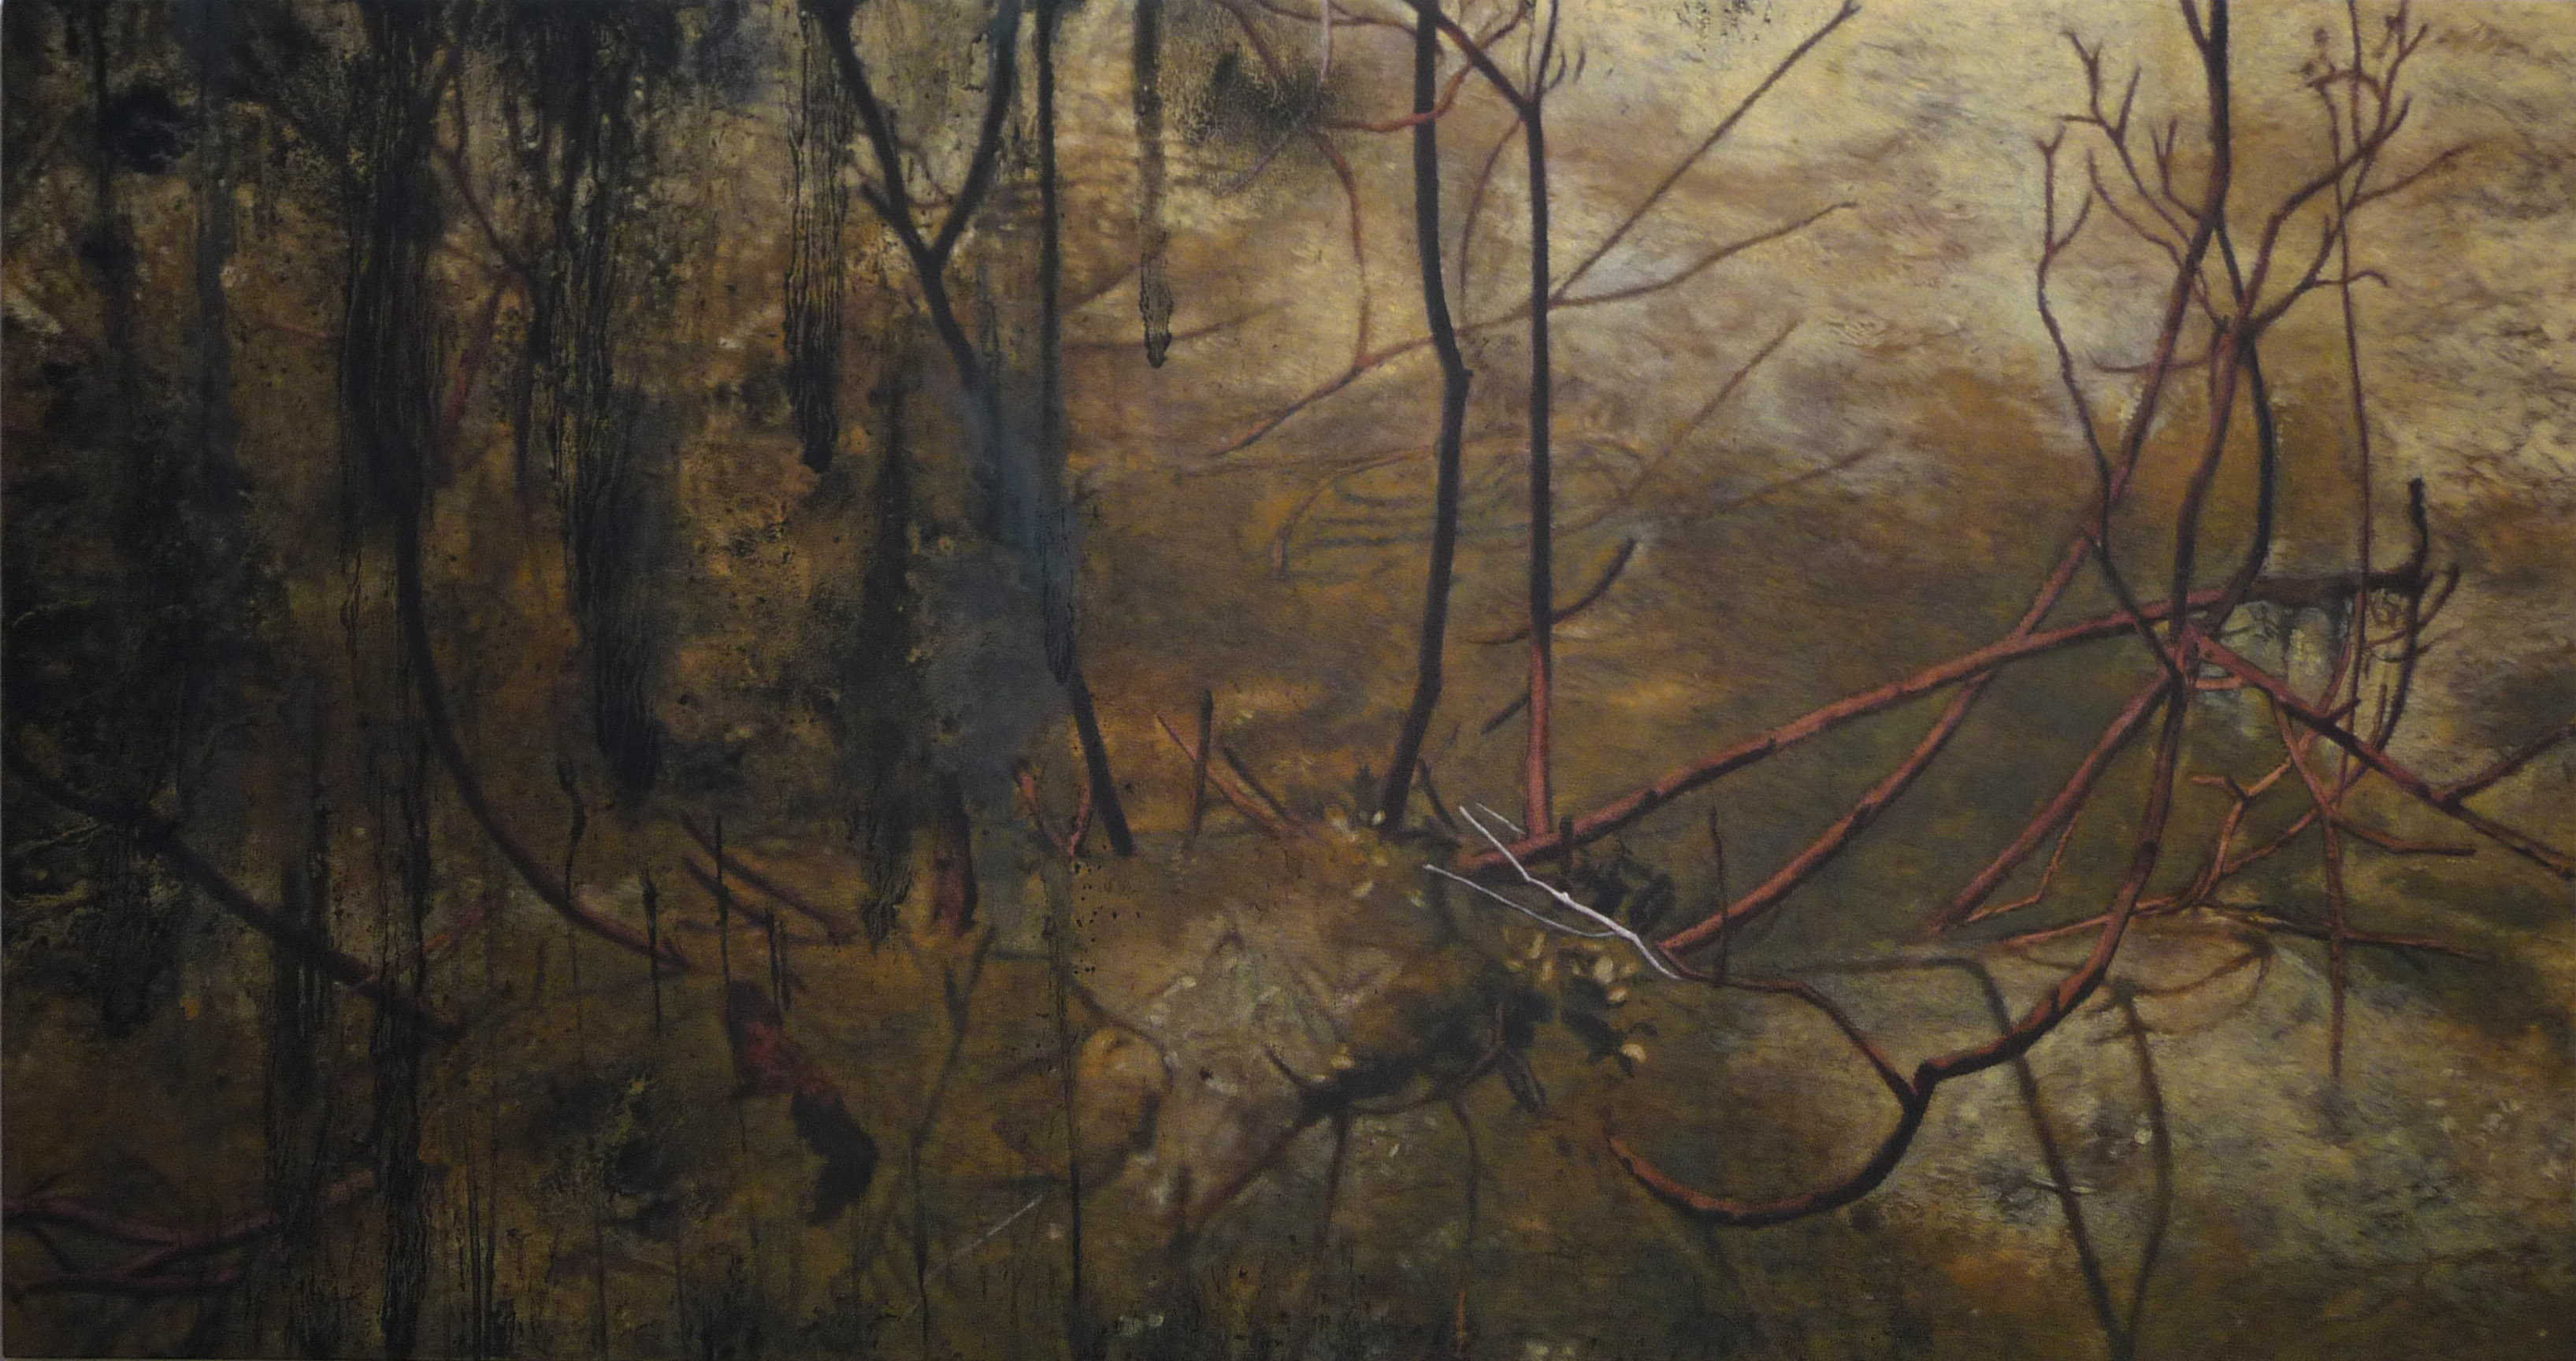 <p><strong>After Fire</strong><br />Punic wax on canvas       190x100 cm